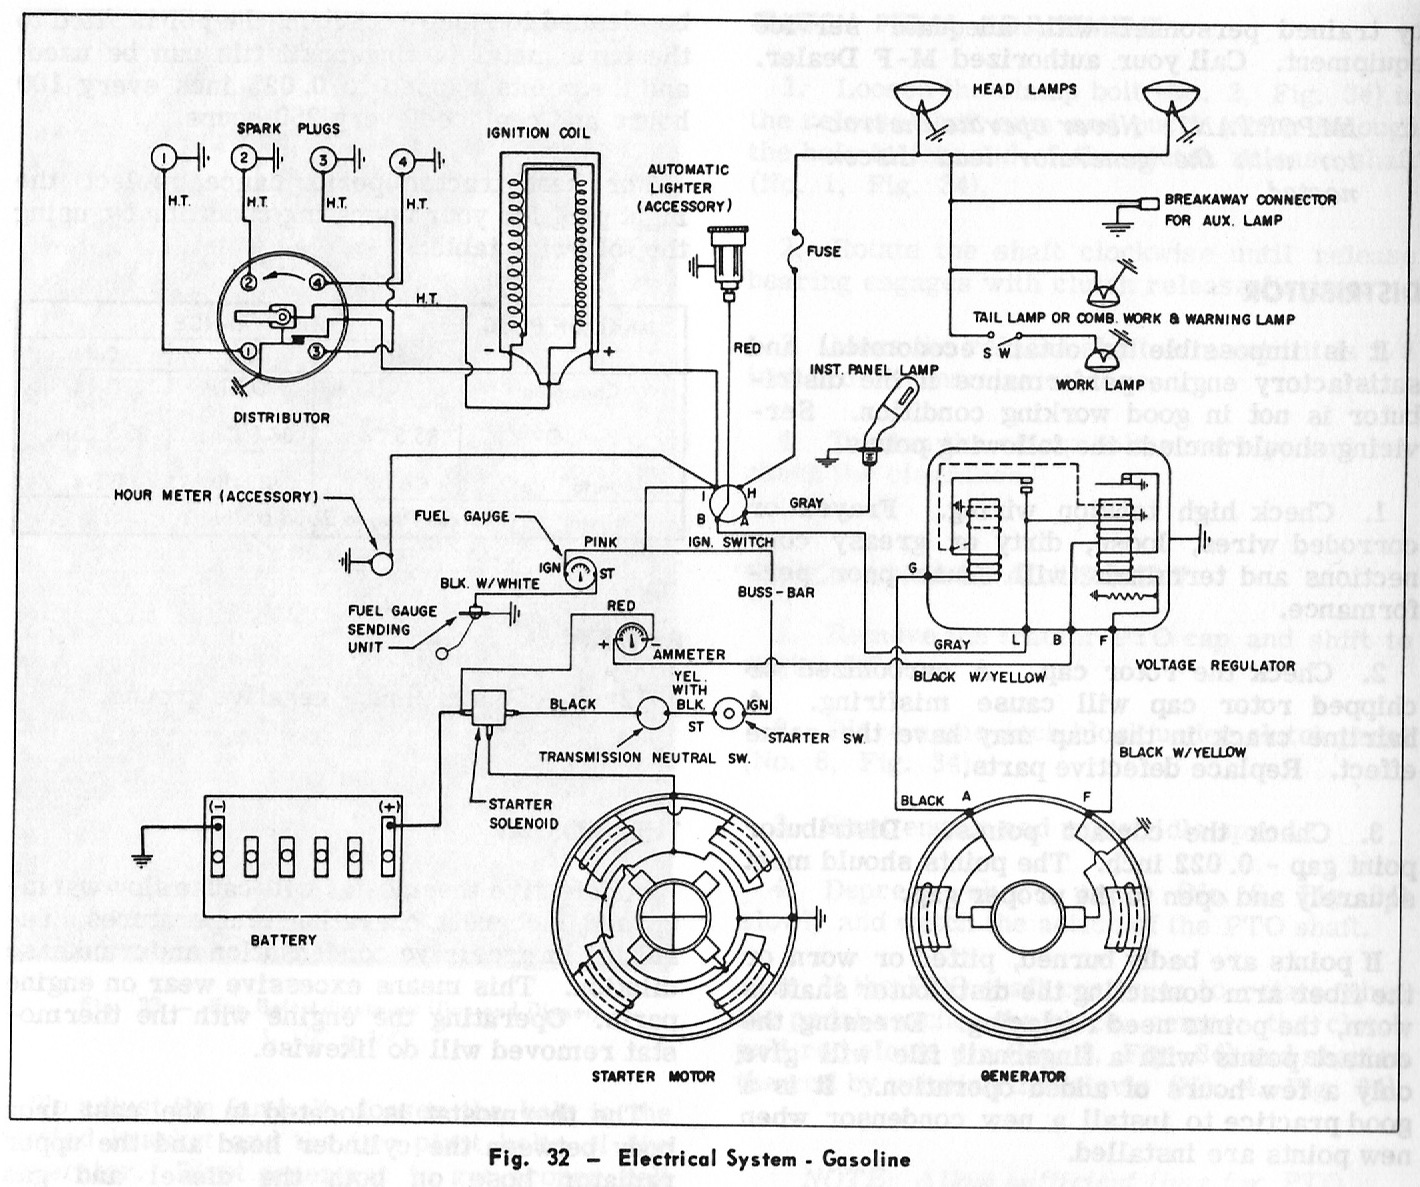 Wiring Diagram For Massey Ferguson 240 Powerking